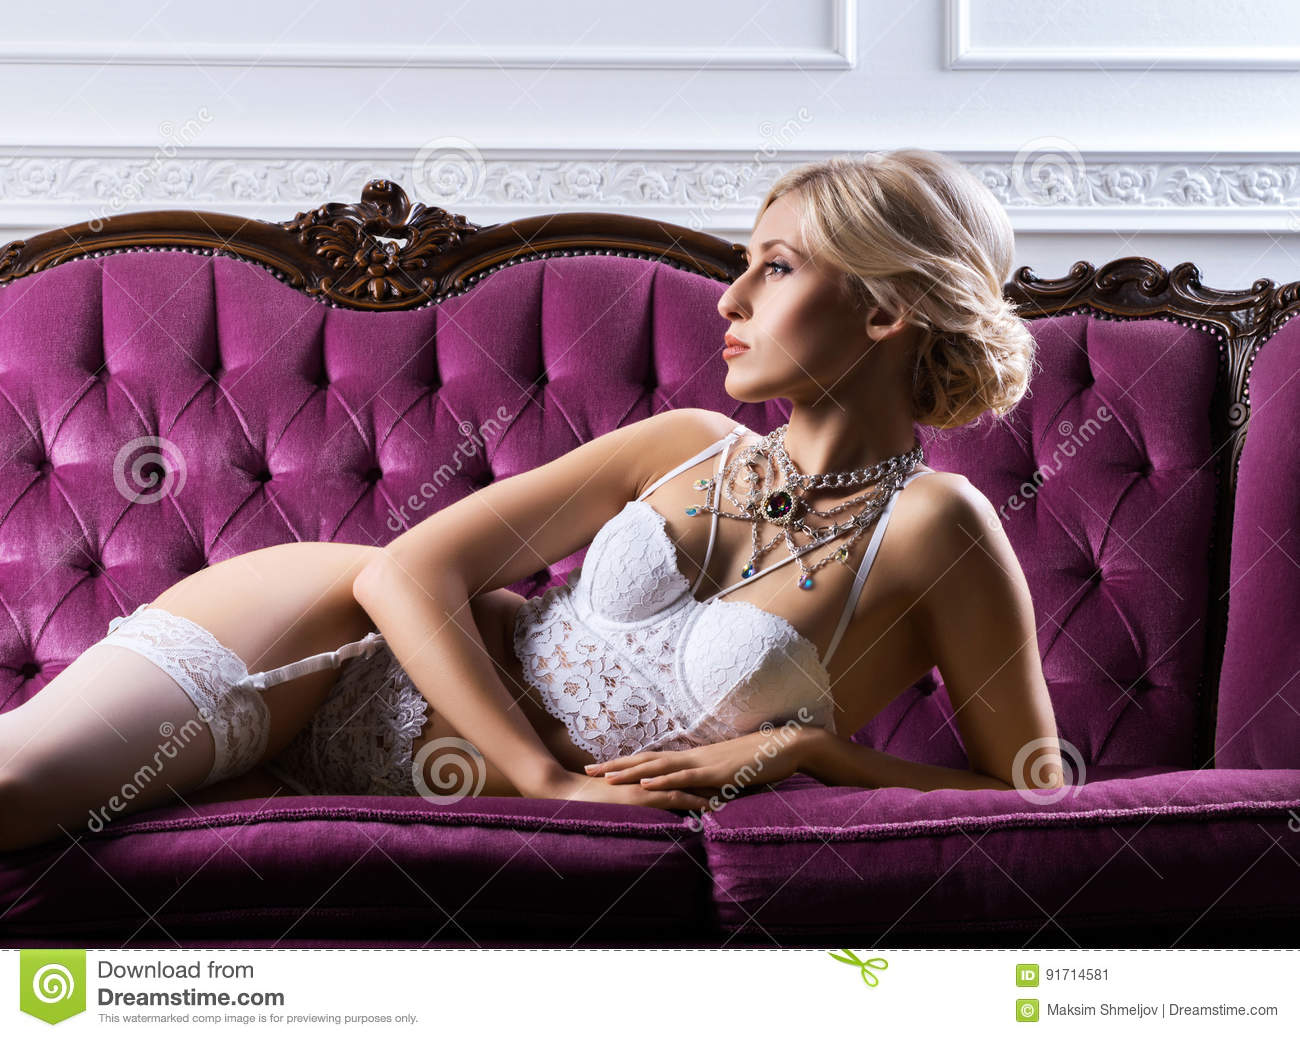 32e079233 and beautiful young girl in a bridal lingerie posing on a pink retro sofa.  Fashion